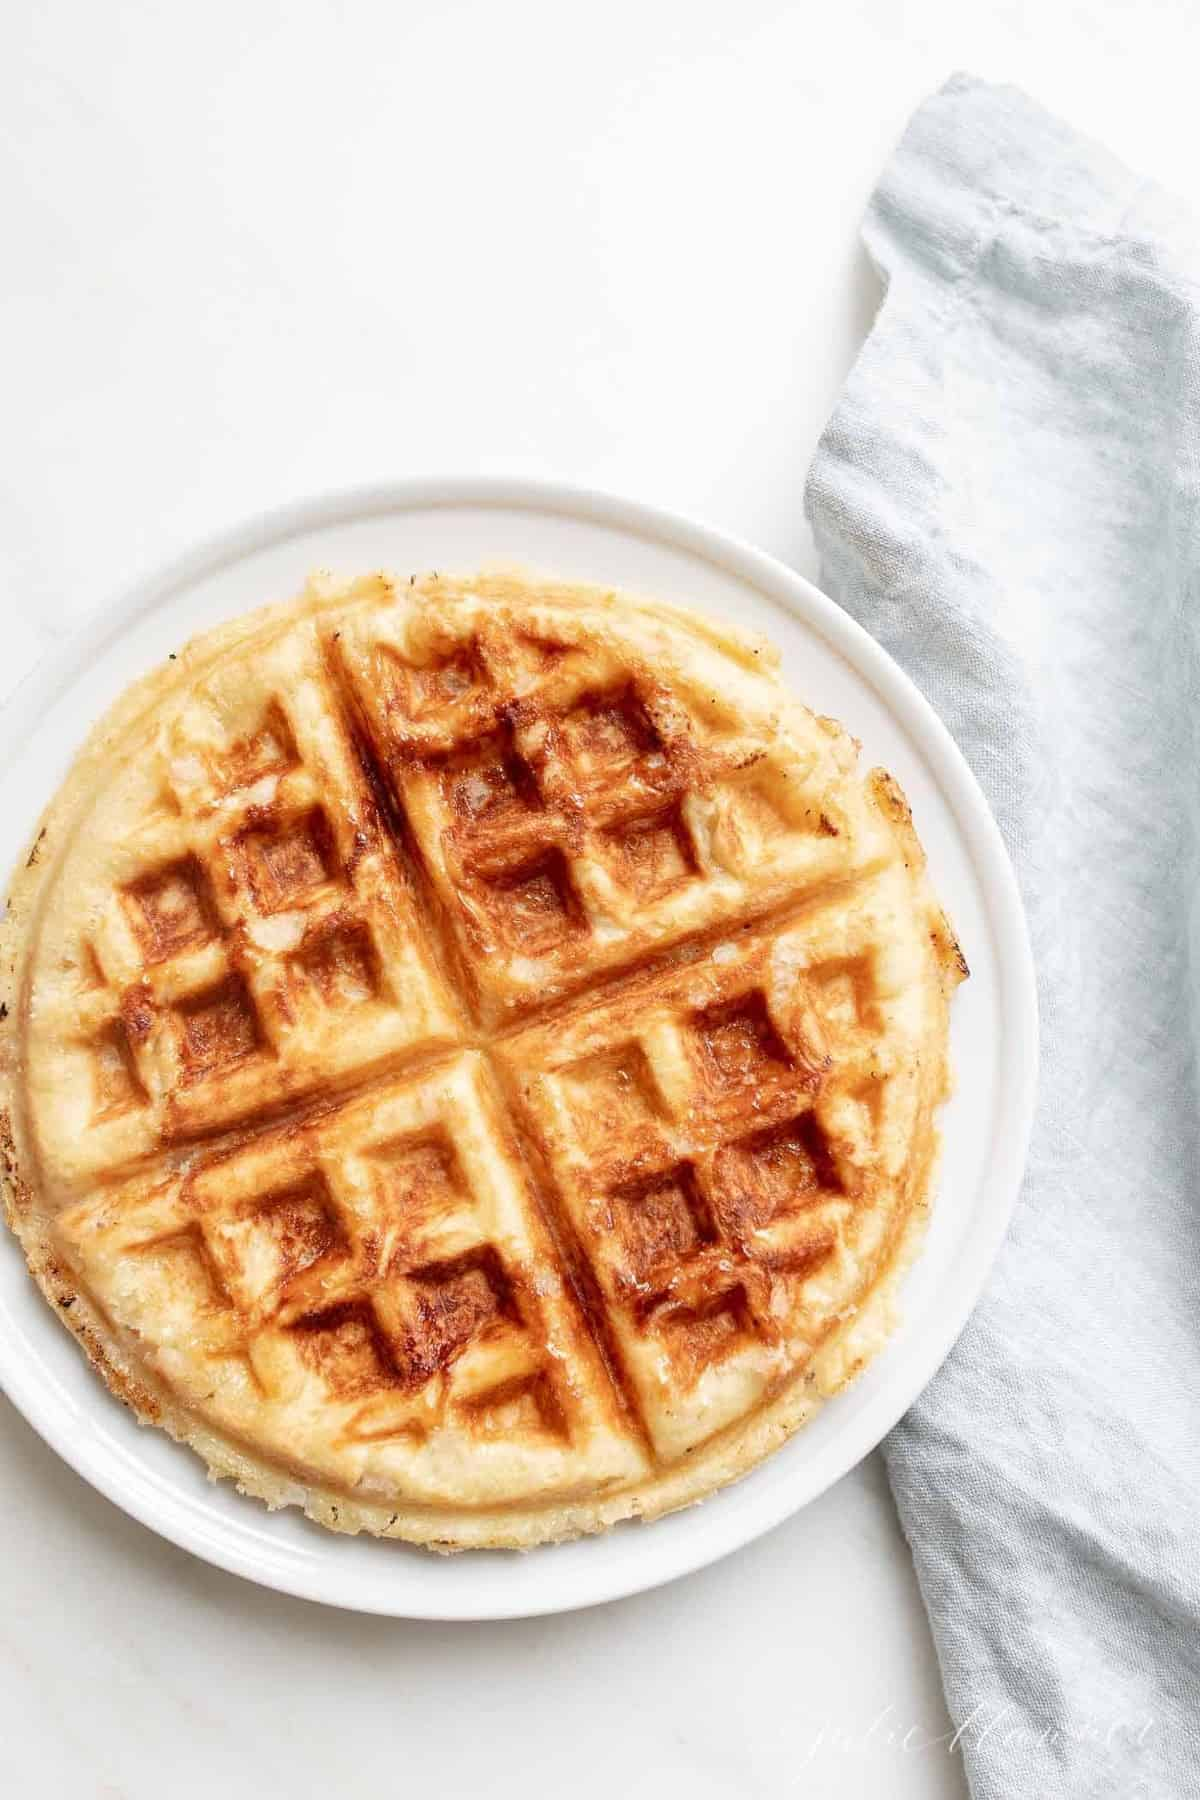 An authentic Belgian waffle on a white plate, blue linen napkin to the side.